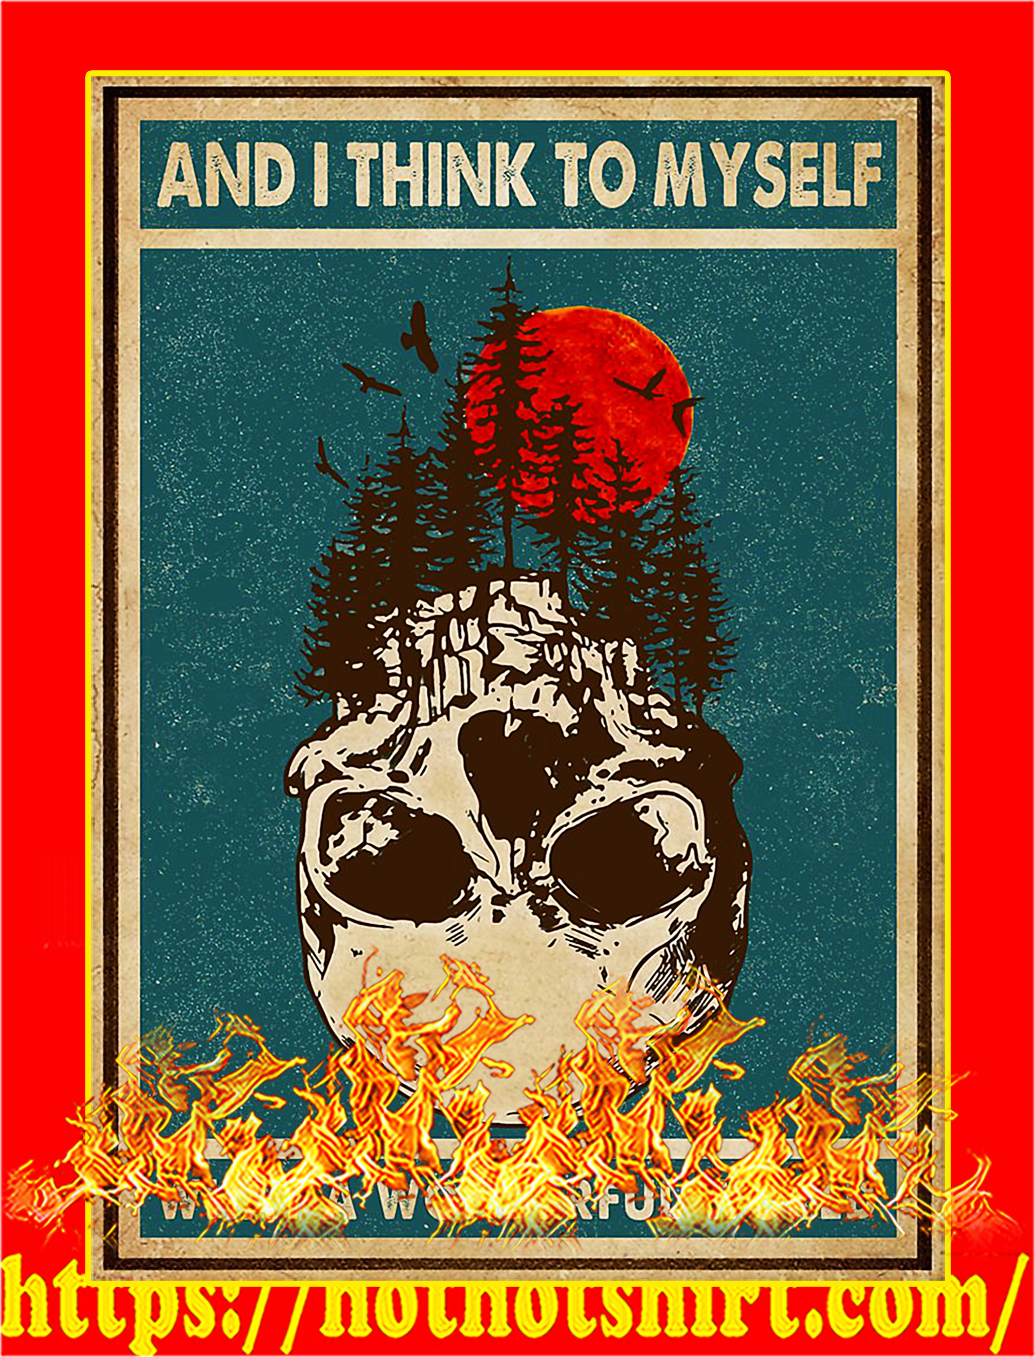 Skull and I think to myself what a wonderful world poster - A3